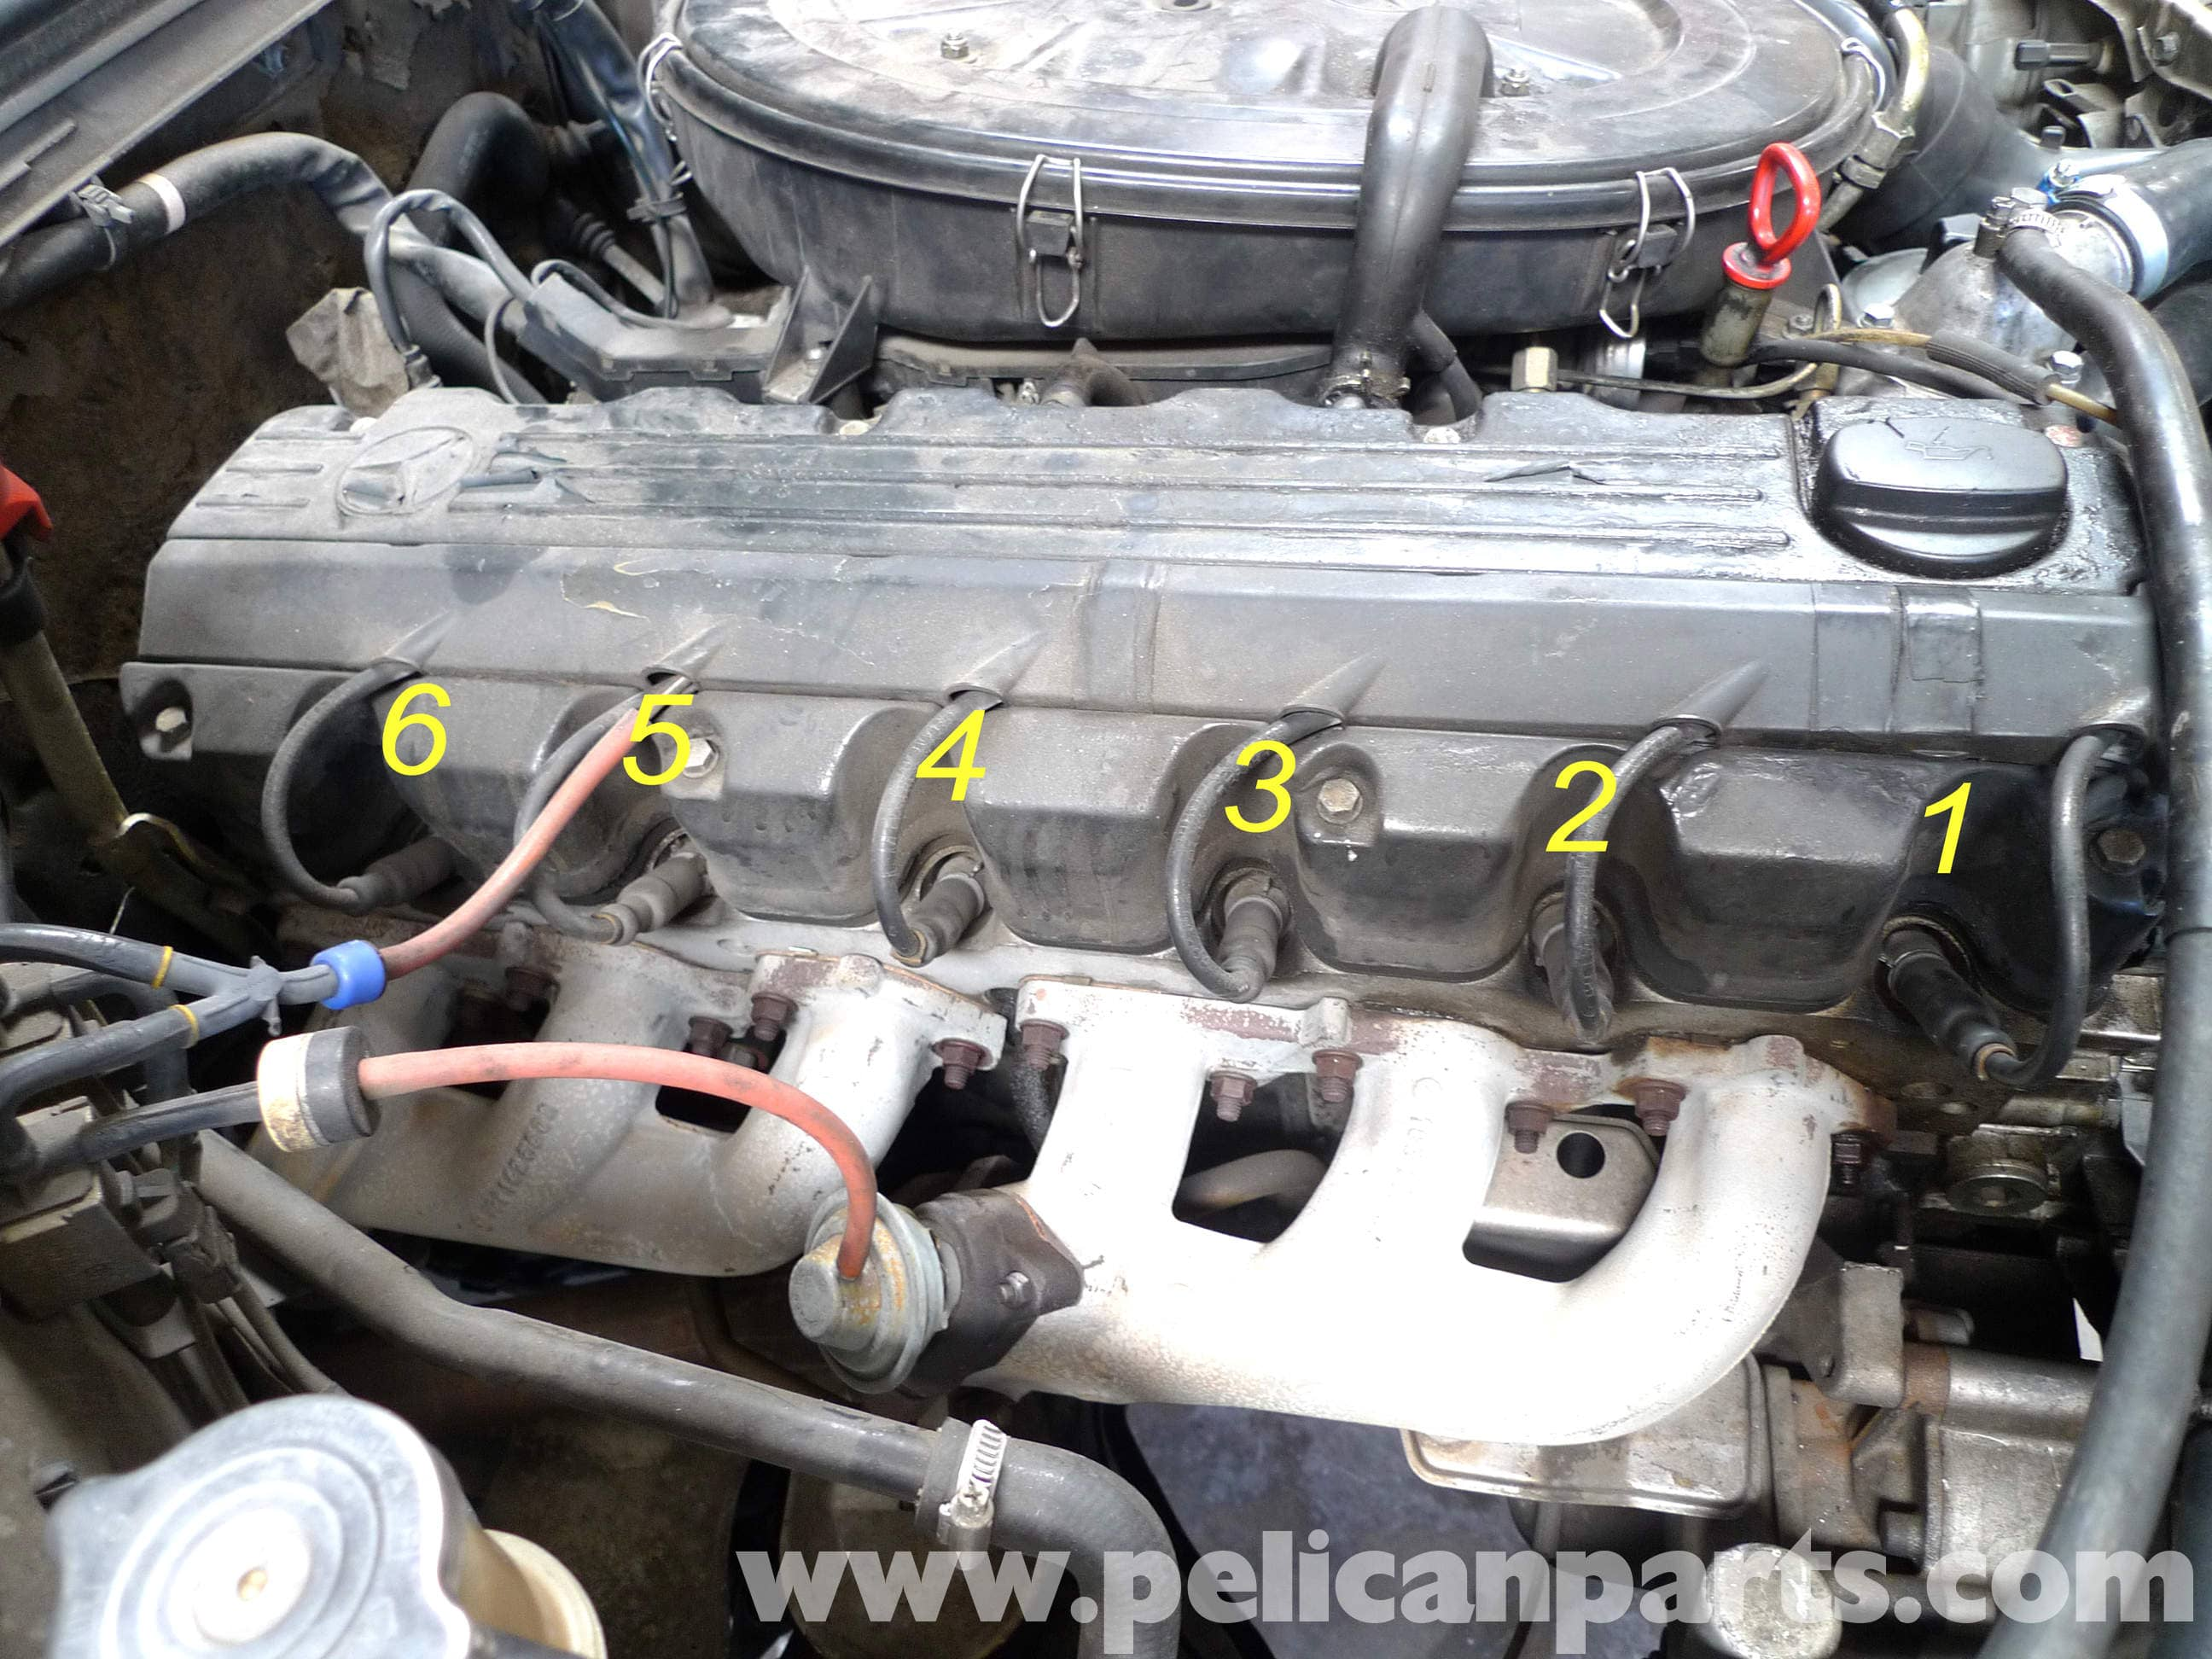 Mercedes-Benz 190E Spark Plugs, Wires, Cap and Rotors Replacement ...